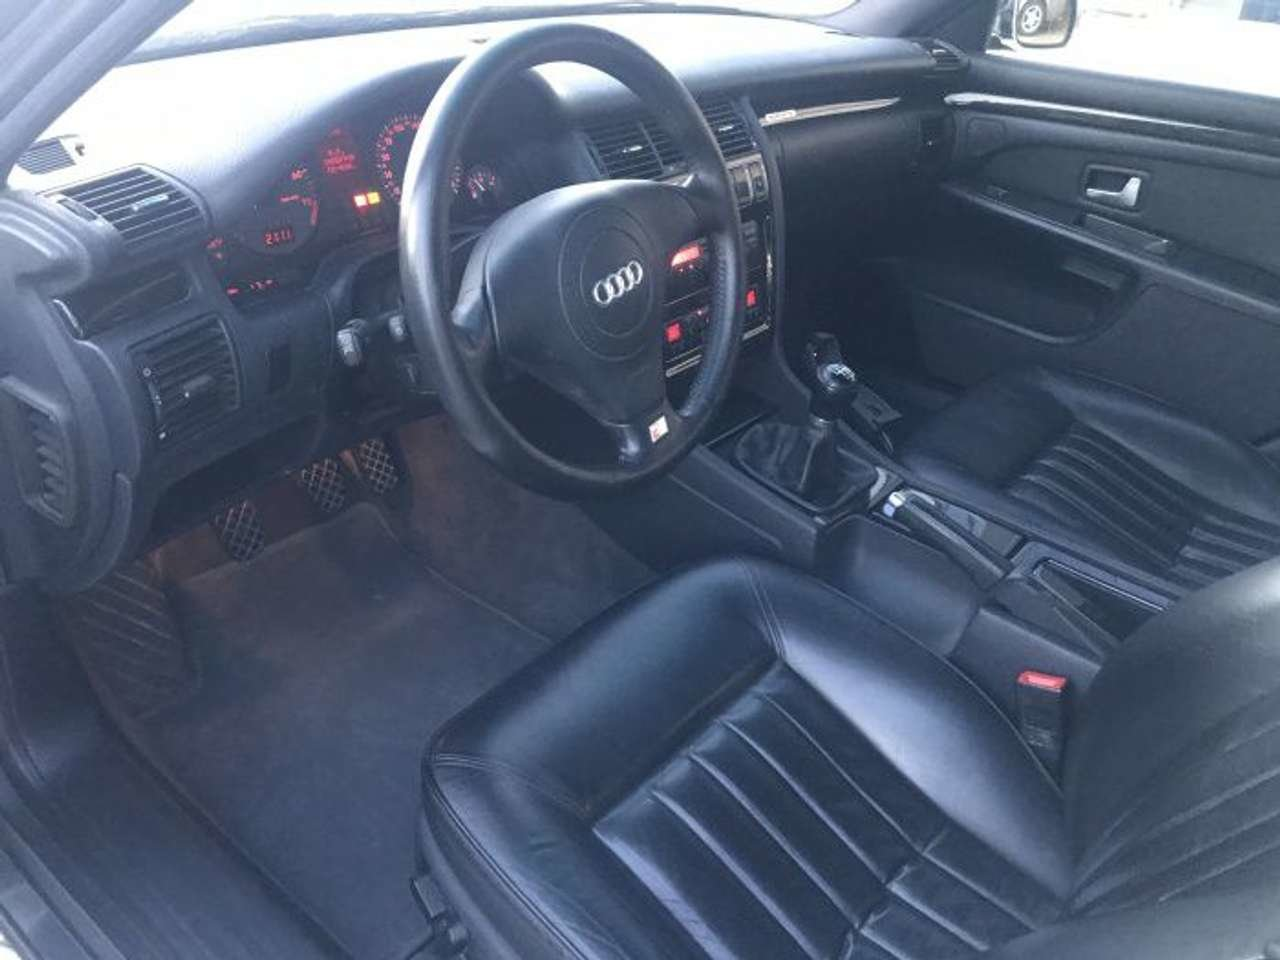 1998 Audi S8 Quattro 6 speed 4.2L-1 owner-superb LHD For Sale (picture 3 of 6)